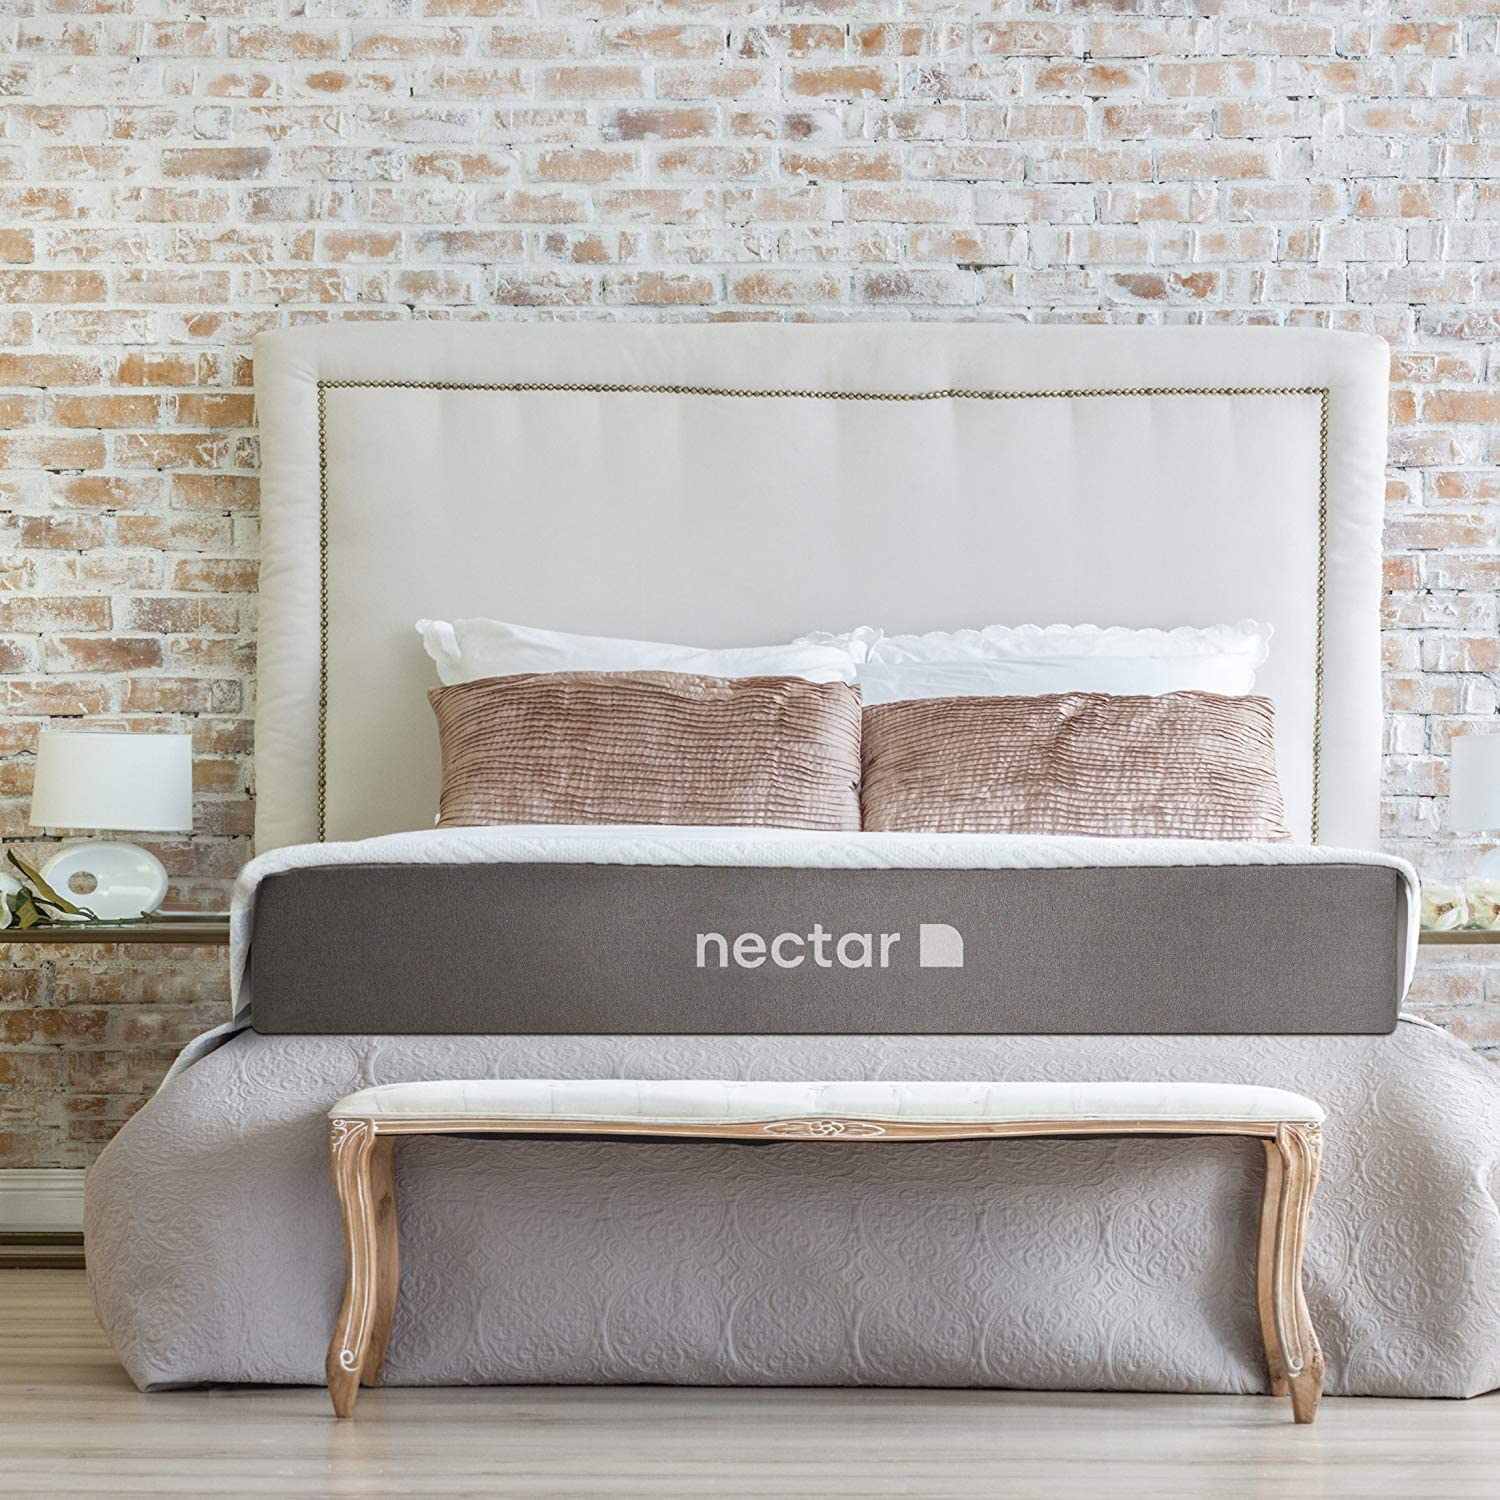 Nectar Amazon Mattress